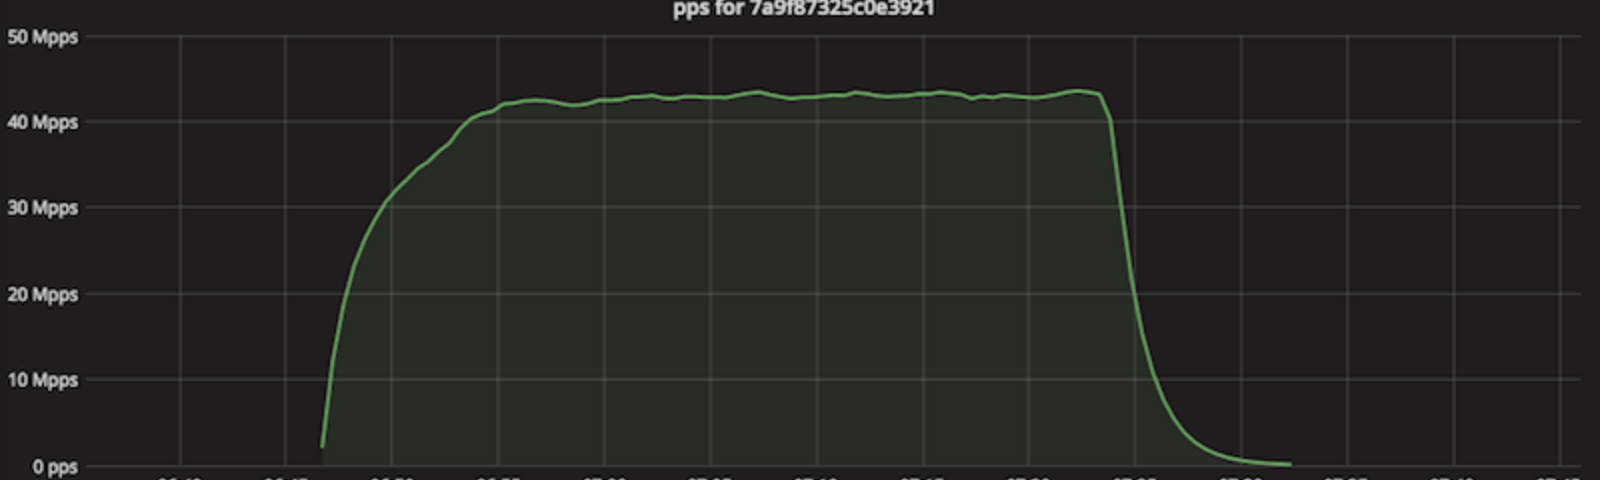 Stupidly Simple DDoS Protocol (SSDP) generates 100 Gbps DDoS